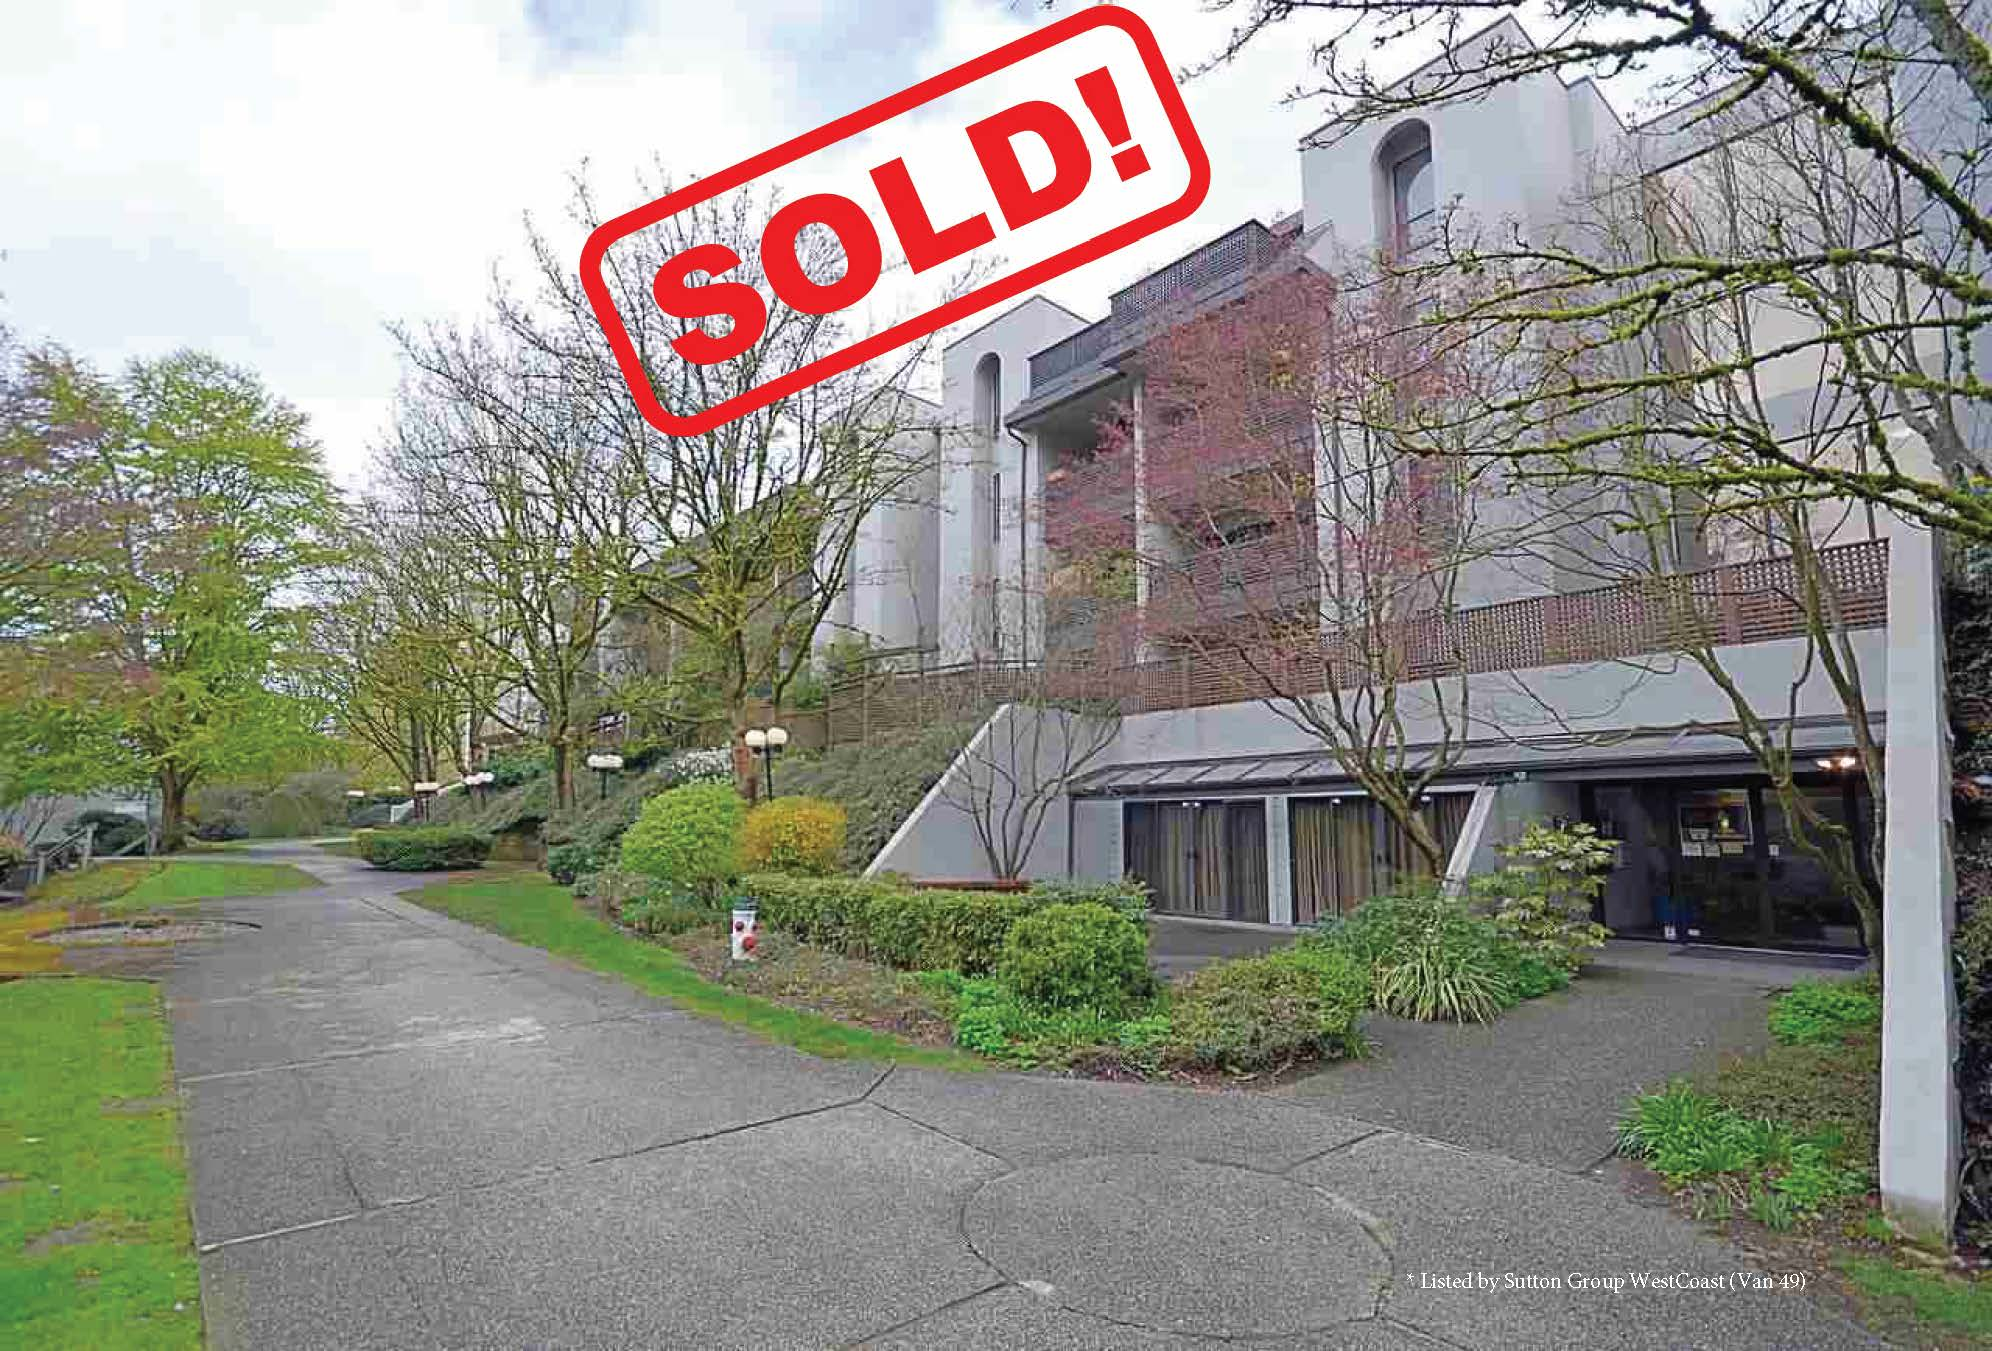 403-1945 Woodway Place   sold for: $290,000  1 Bed | 1 Bath | 691 SF